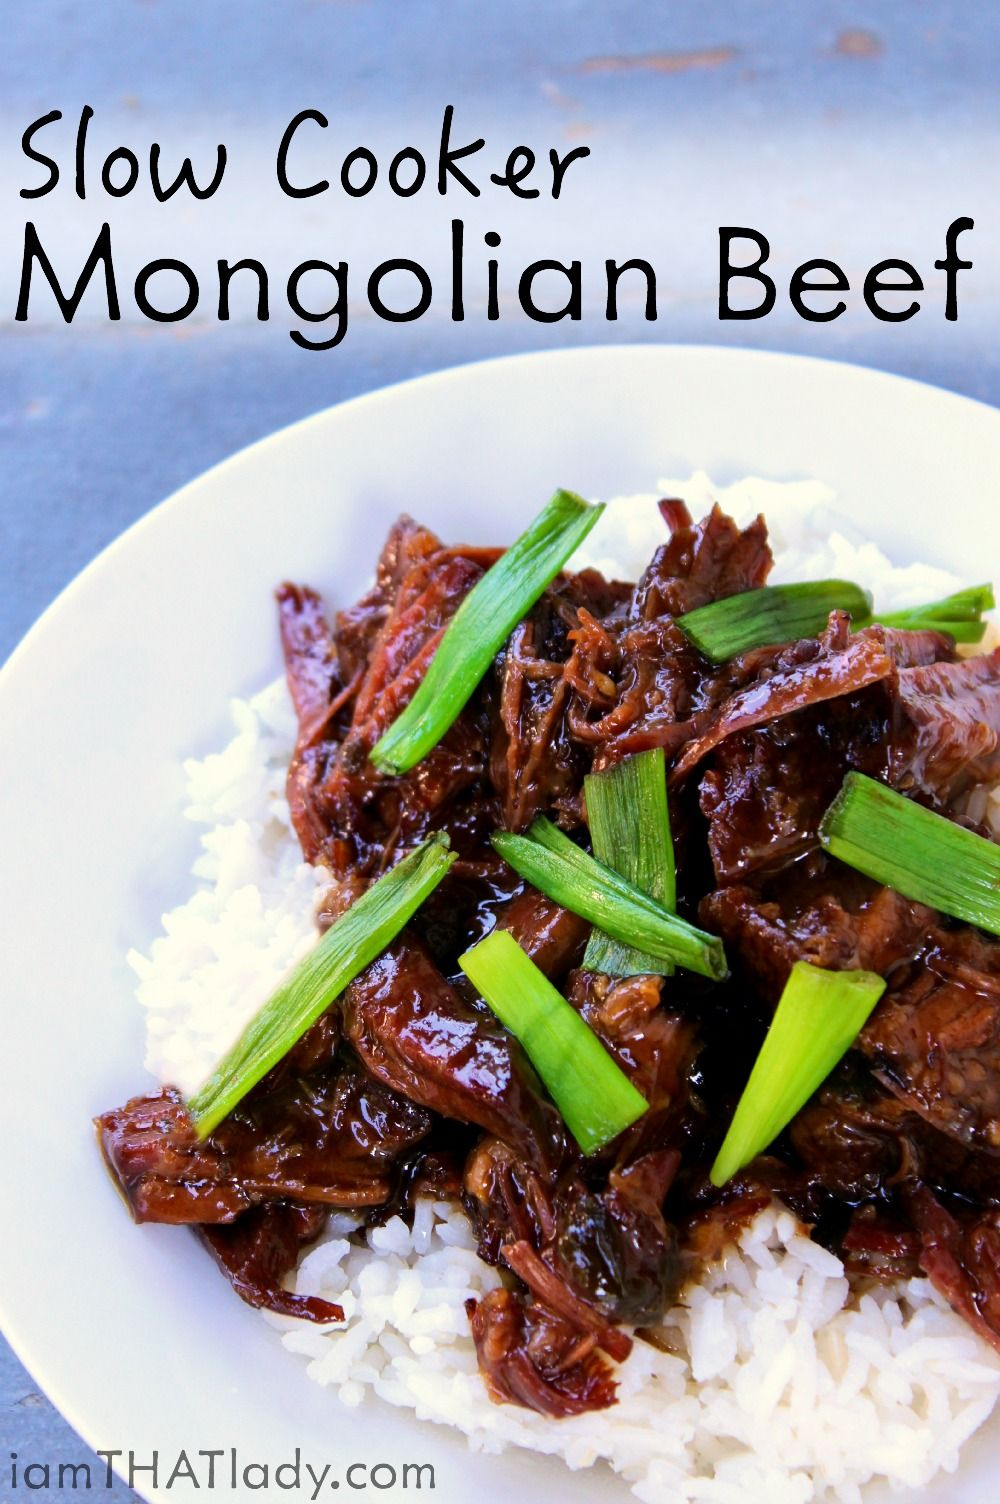 Slow Cooker Mongolian Beef Recipe Crockpot Recipes Slow Cooker